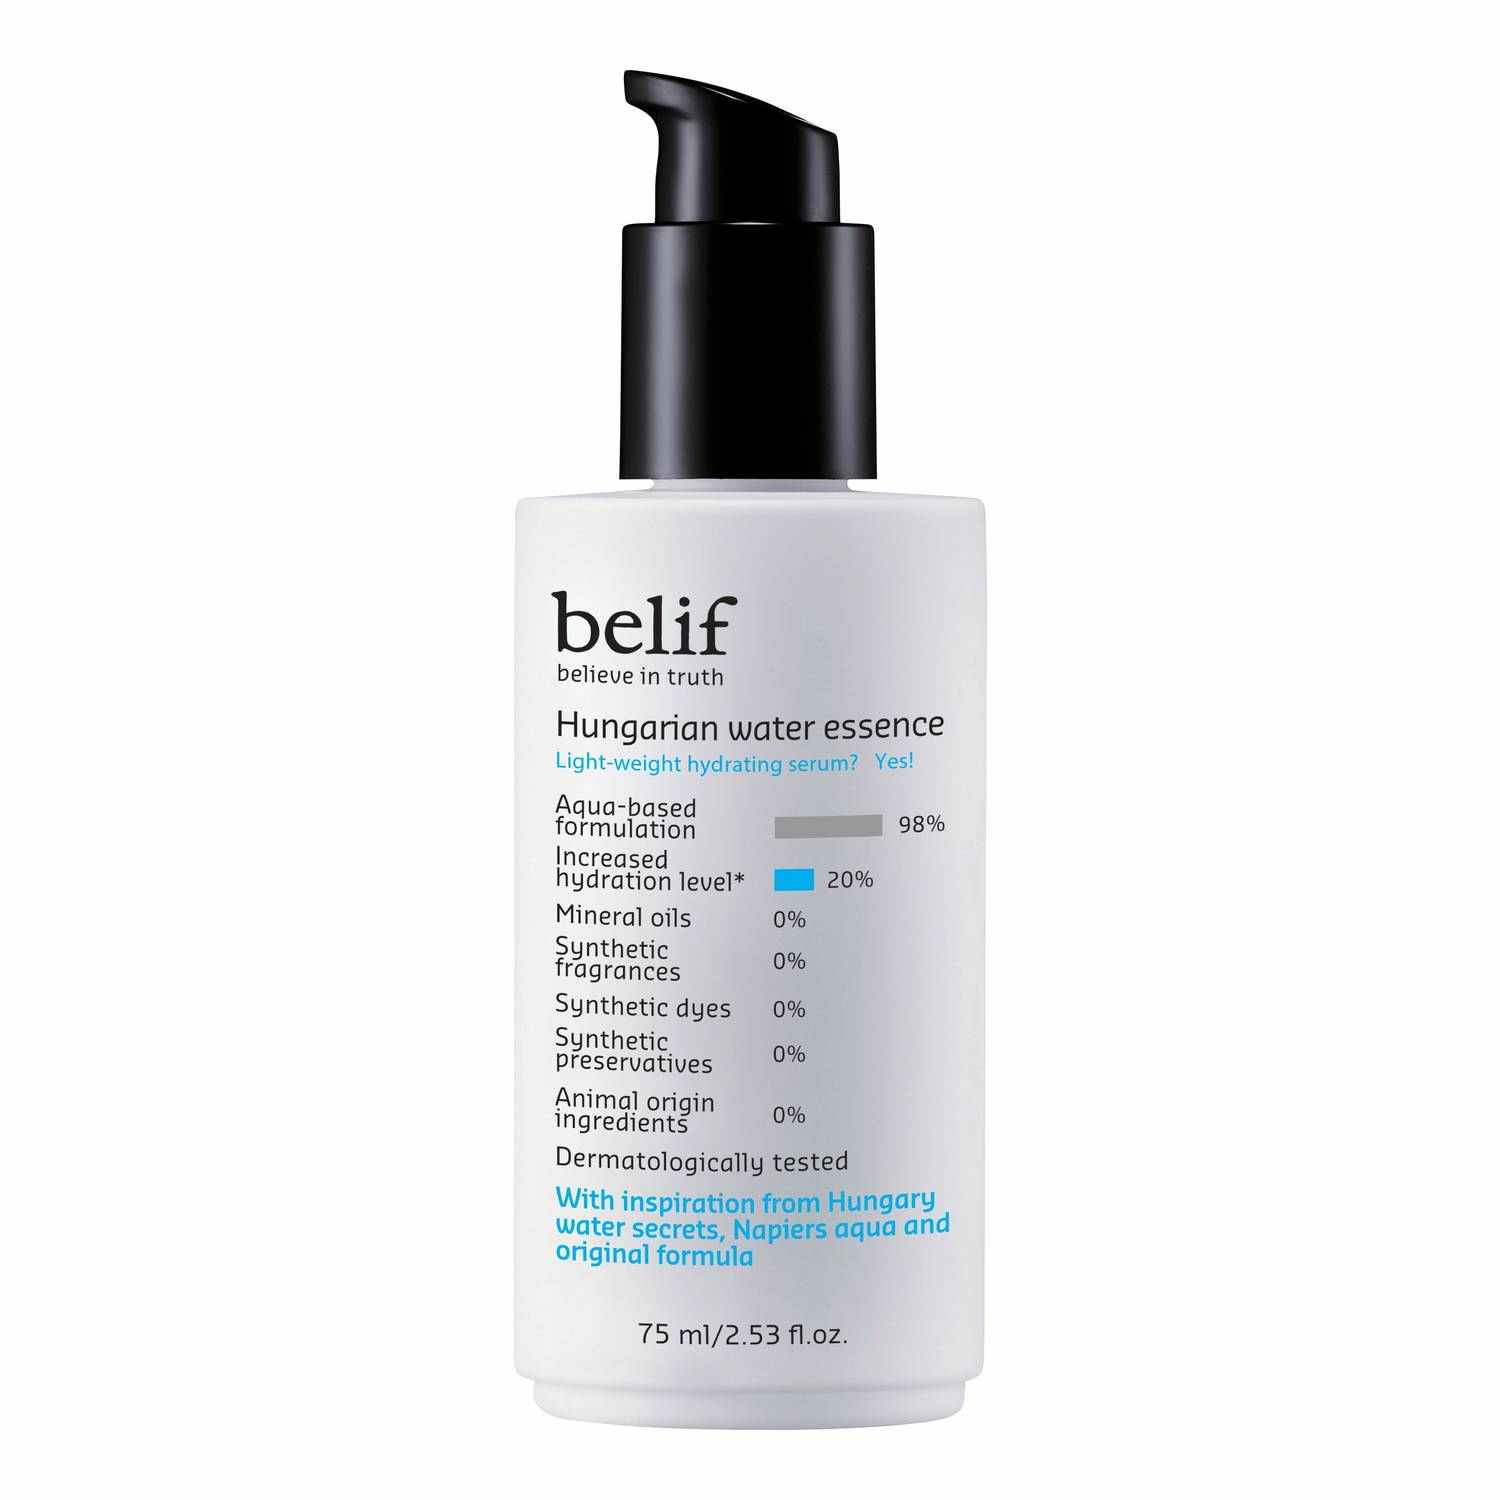 belif hungarian water essence